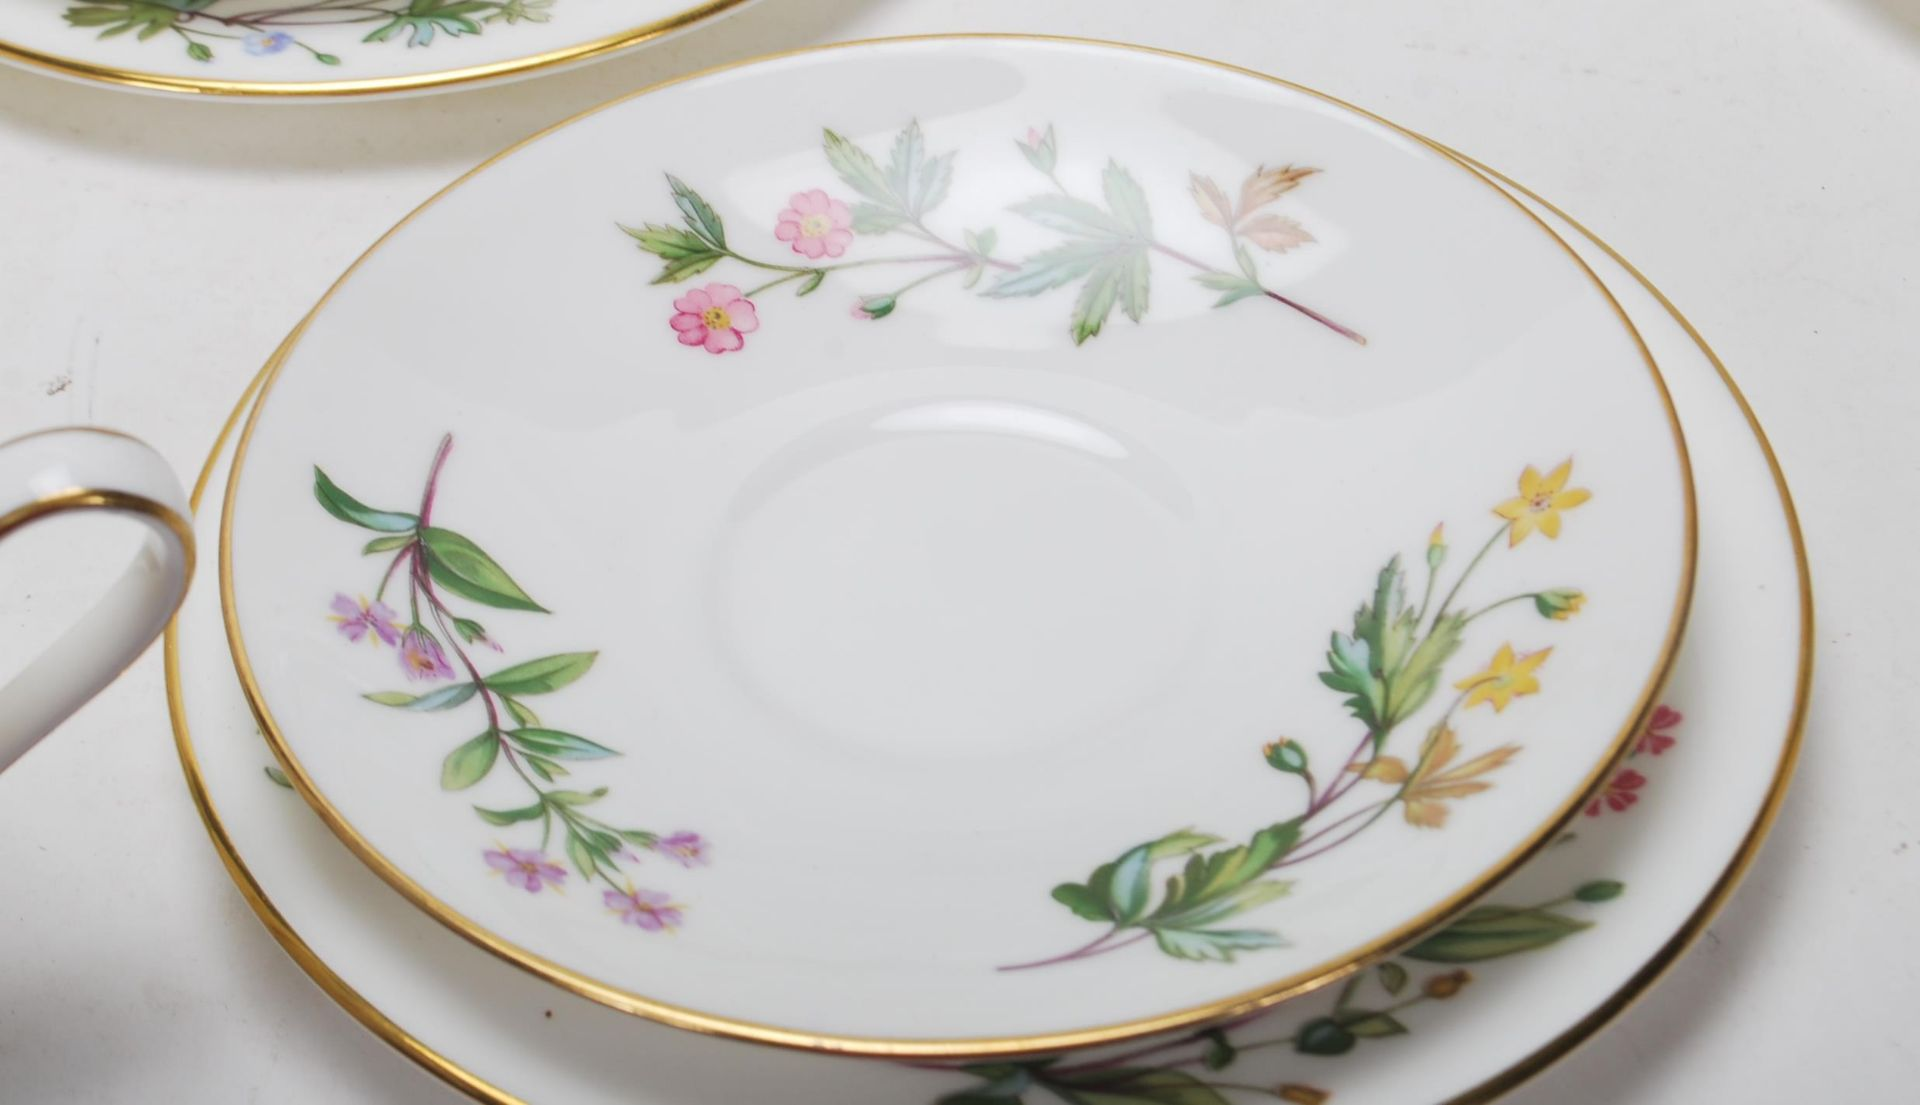 MINTON MEADOW PATTERN BONE CHINA TEA SERVICE - Image 5 of 12